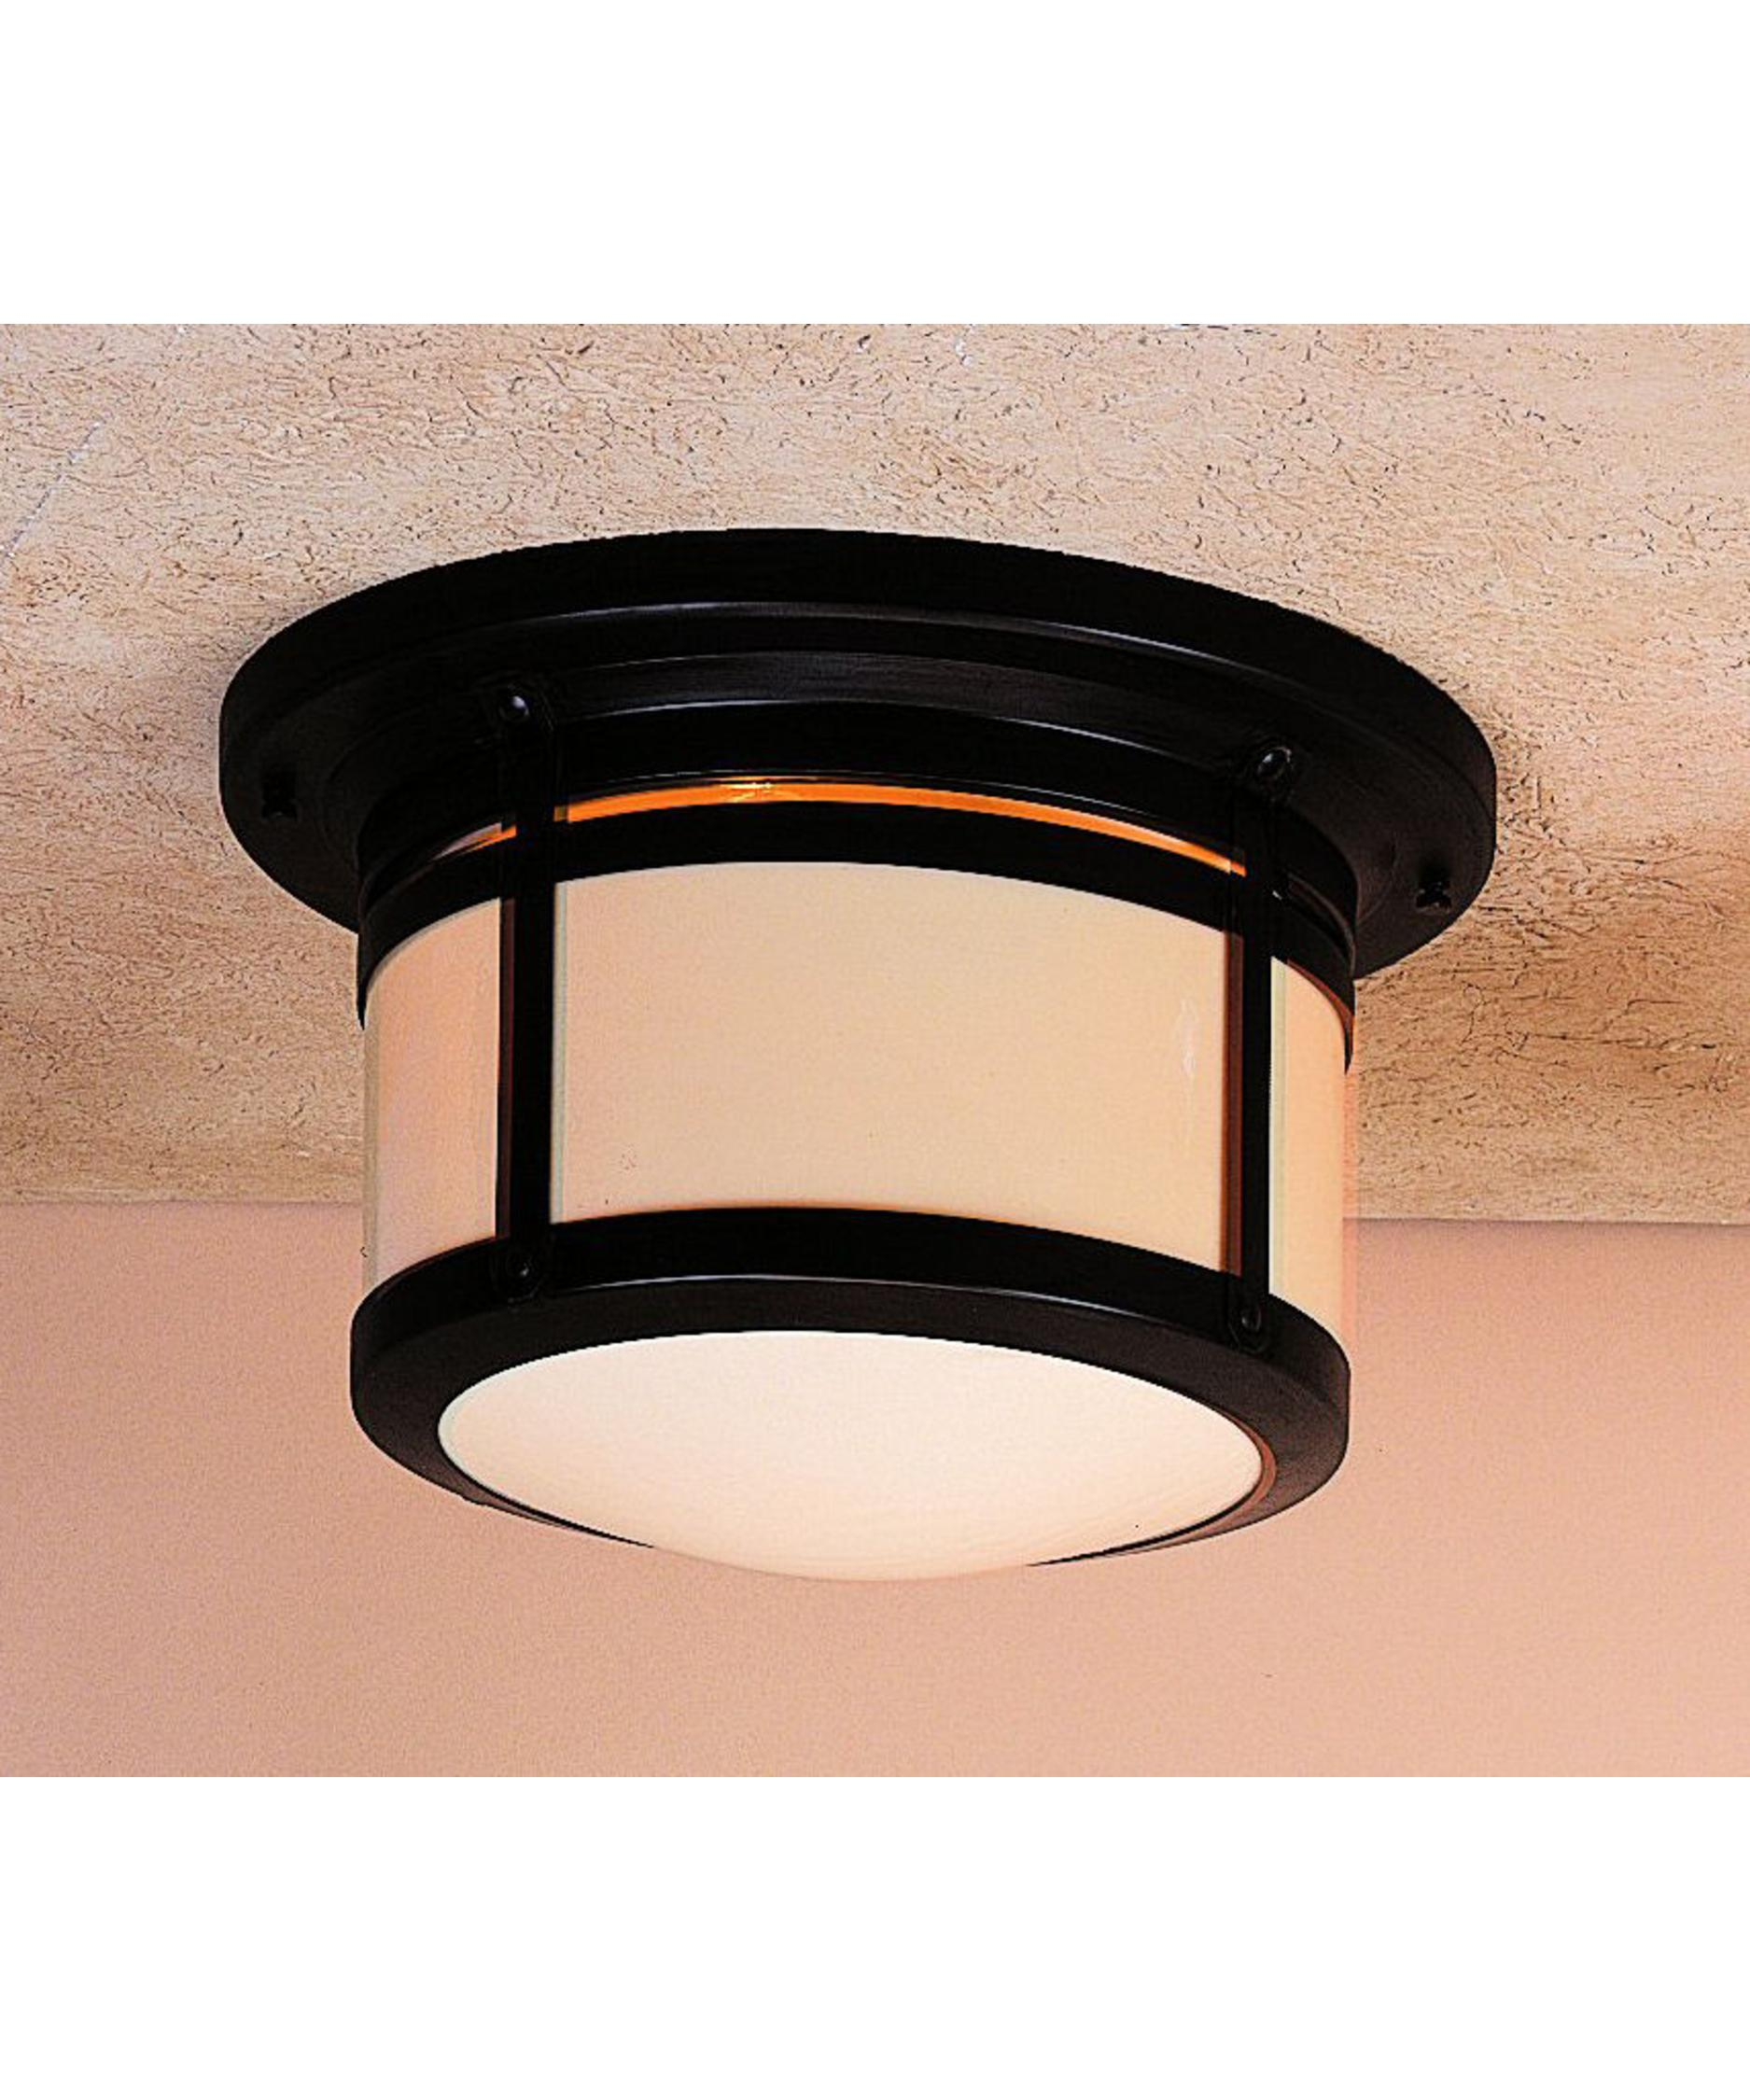 shown in bronze finish with cream glass arroyo craftsman lighting